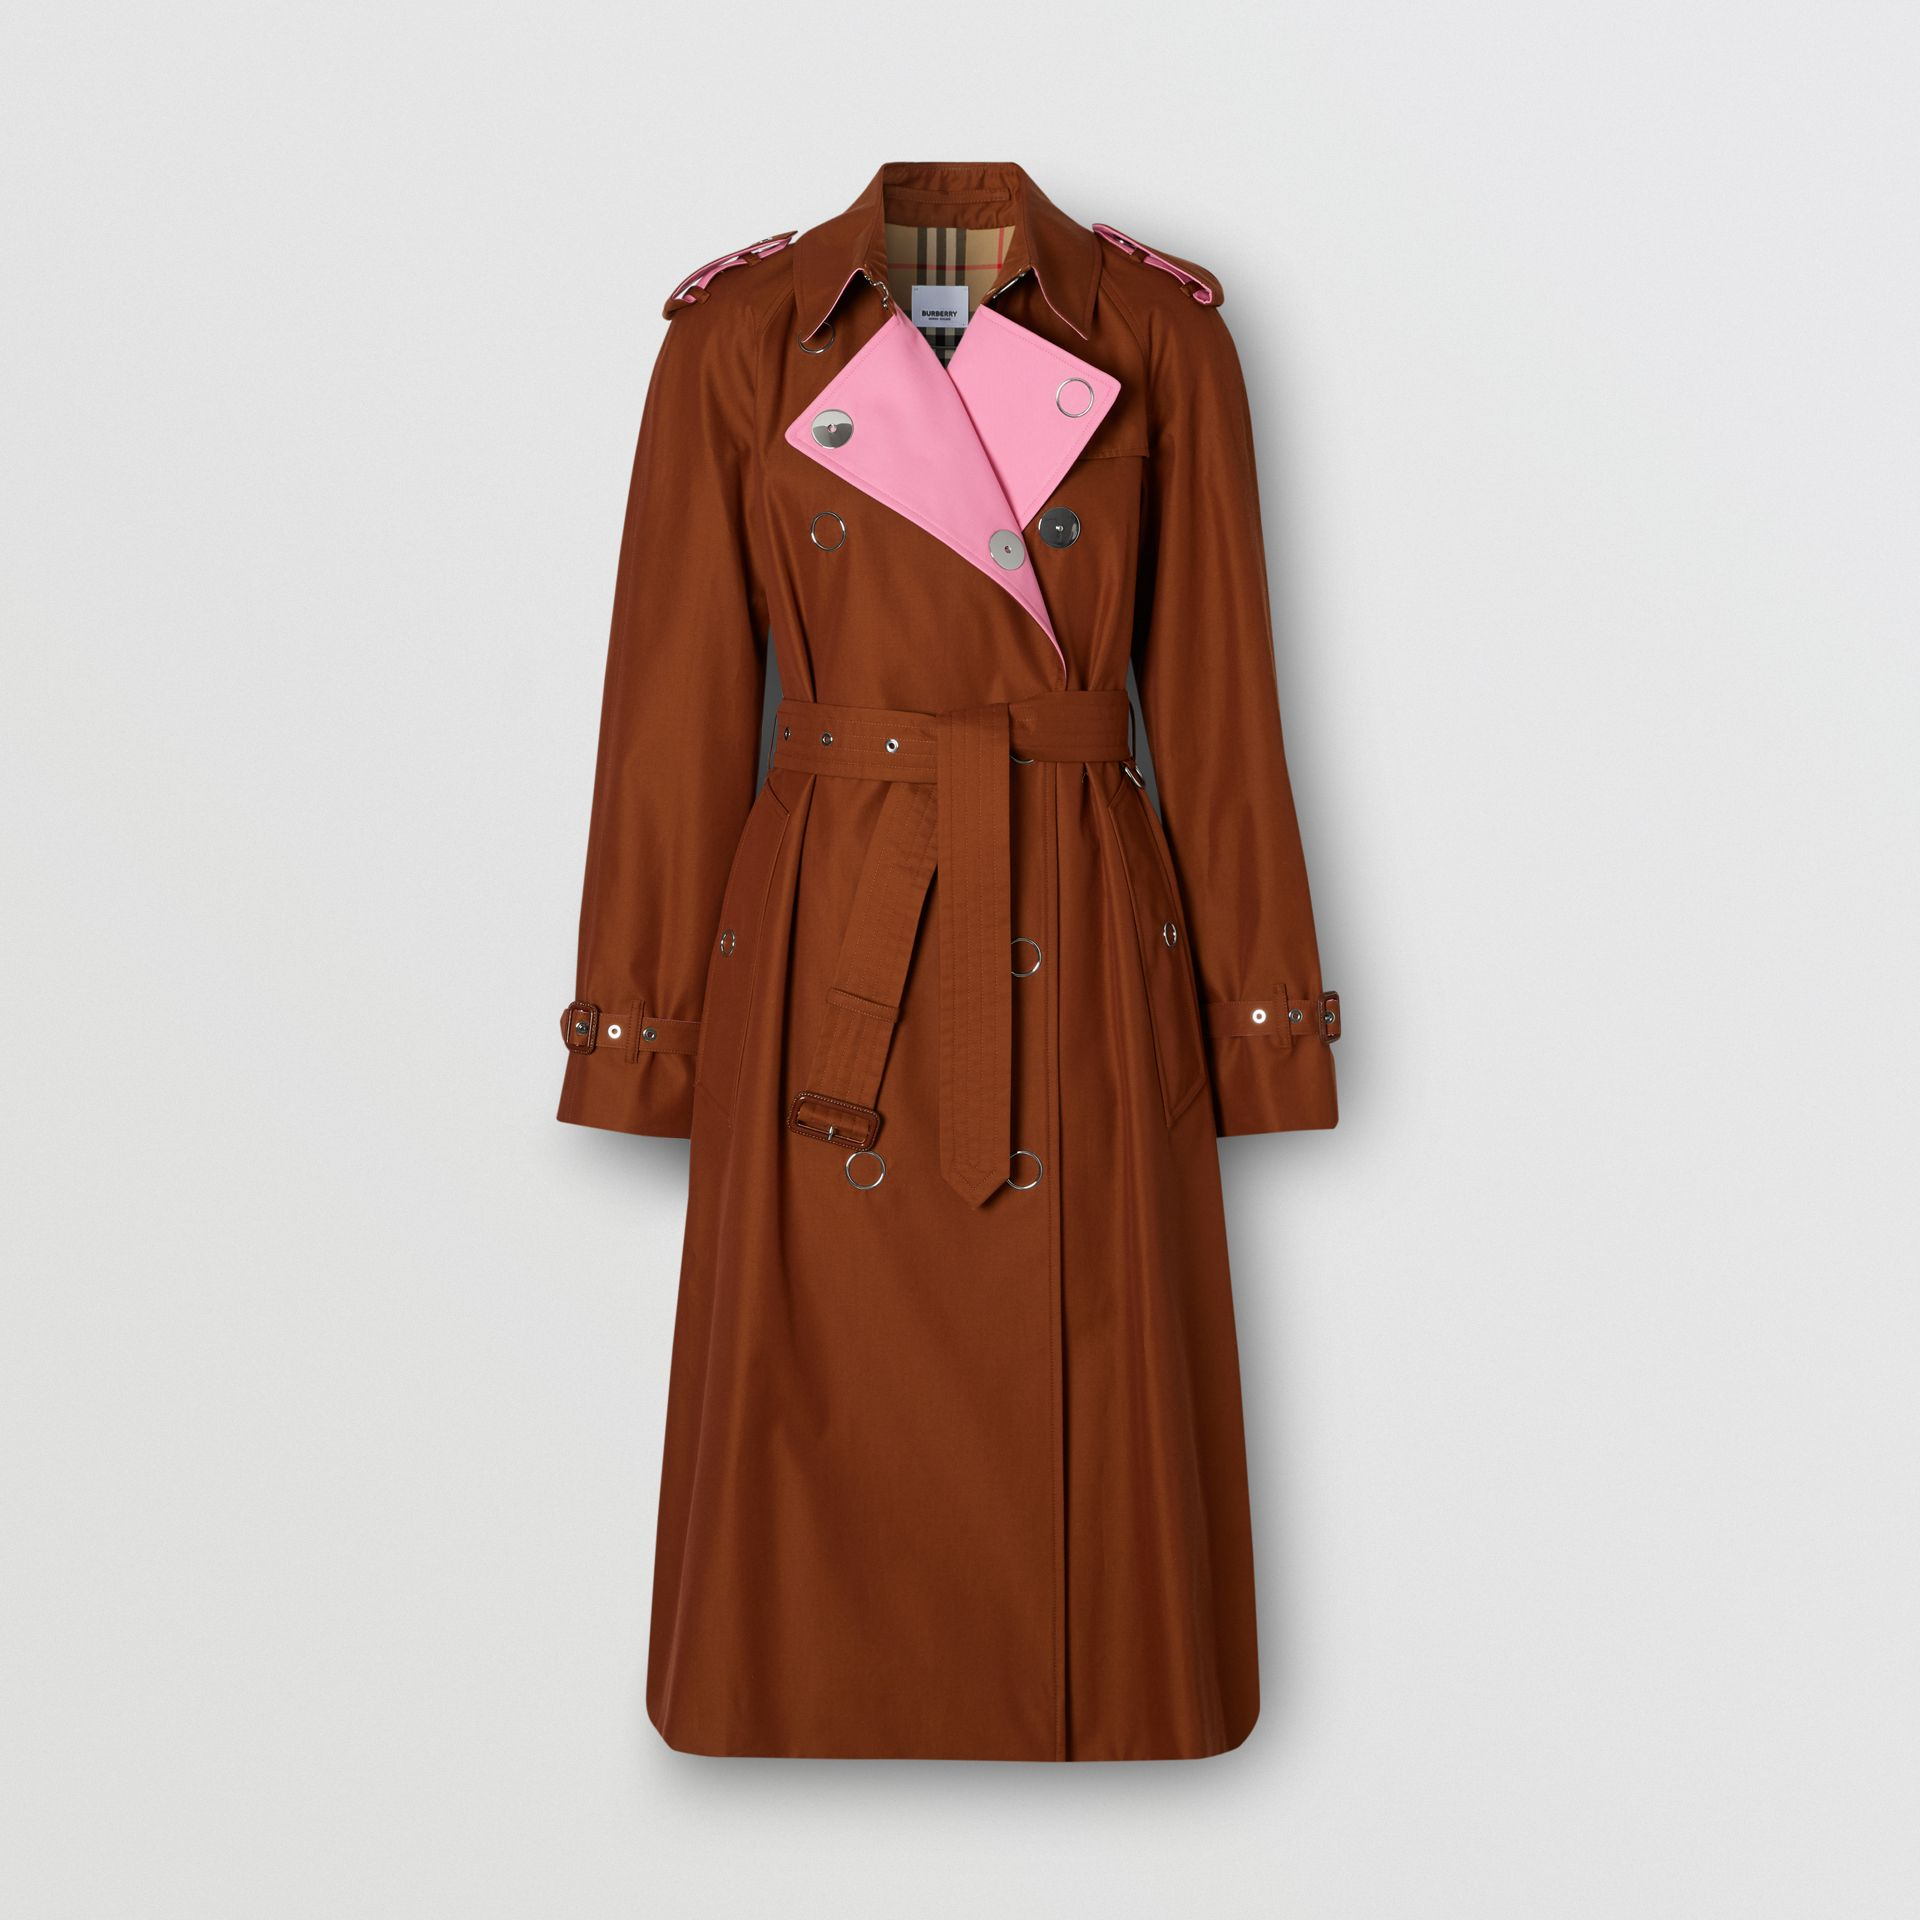 Colour Block Cotton Gabardine Trench Coat in Chestnut Brown - Women | Burberry - gallery image 3